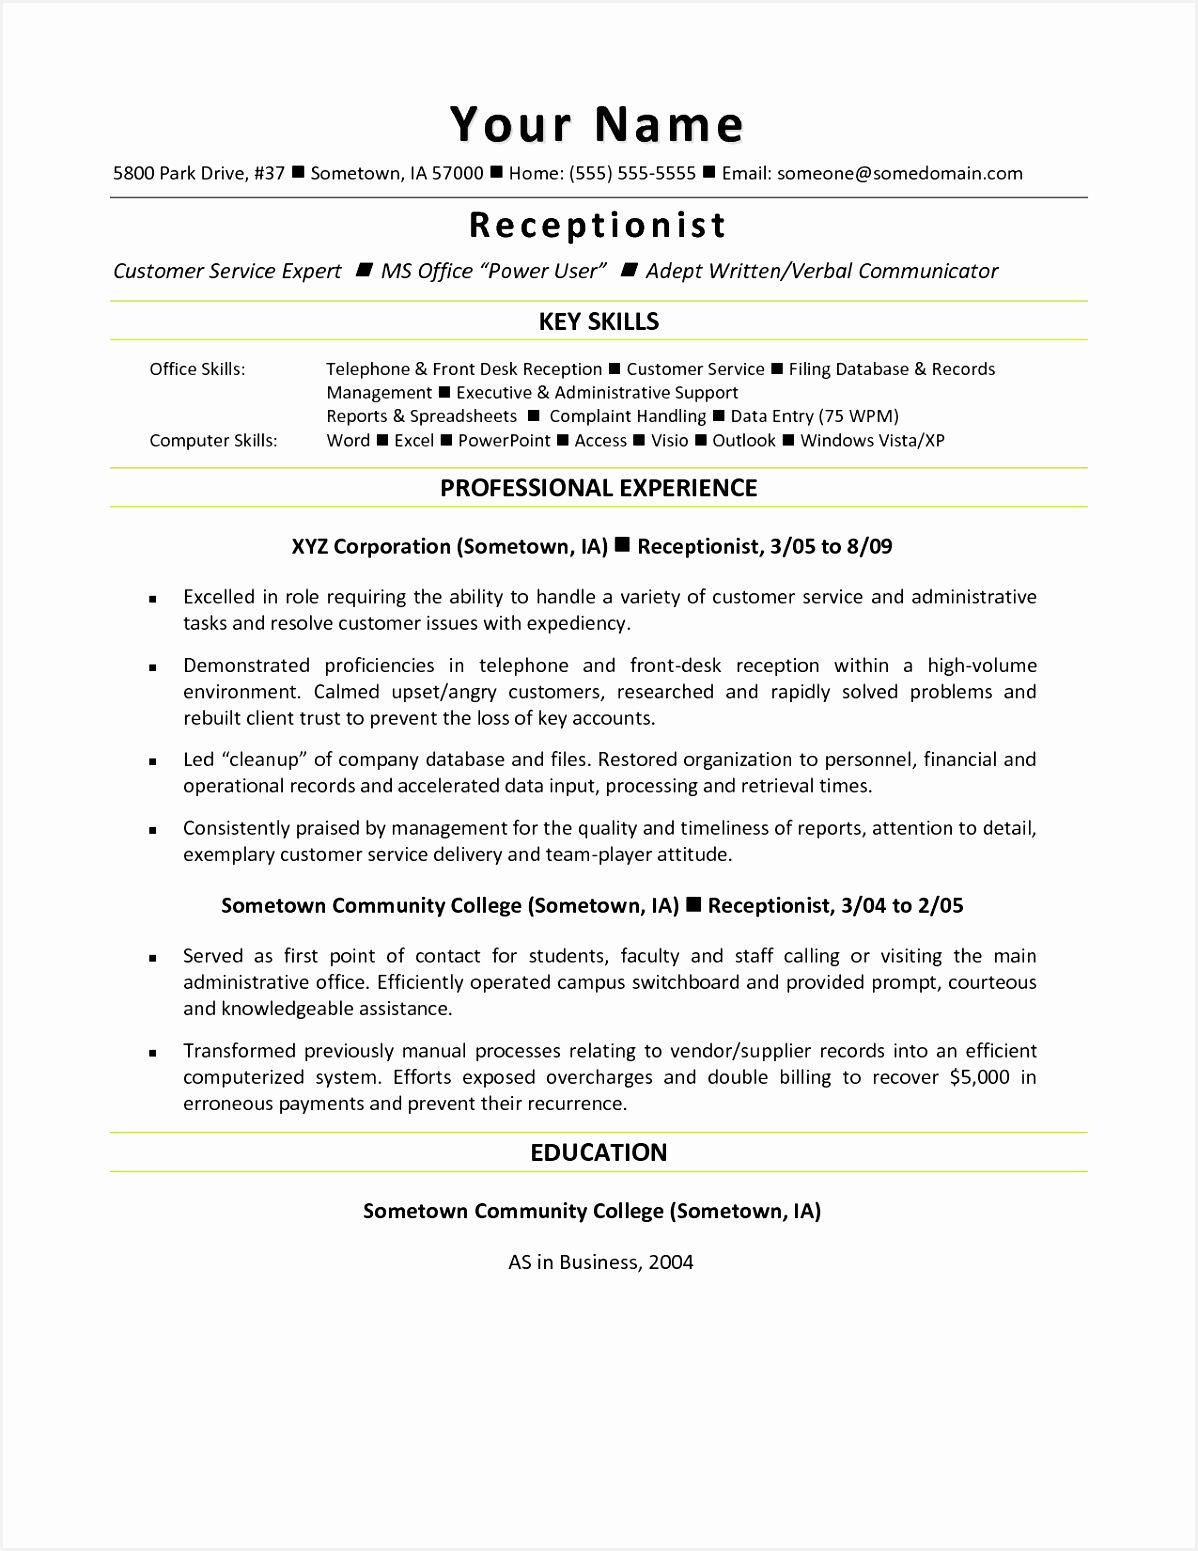 Sample Cover Letter for Customer Service Resume Dtakj New Microsoft Cover Letter Template Samples15511198